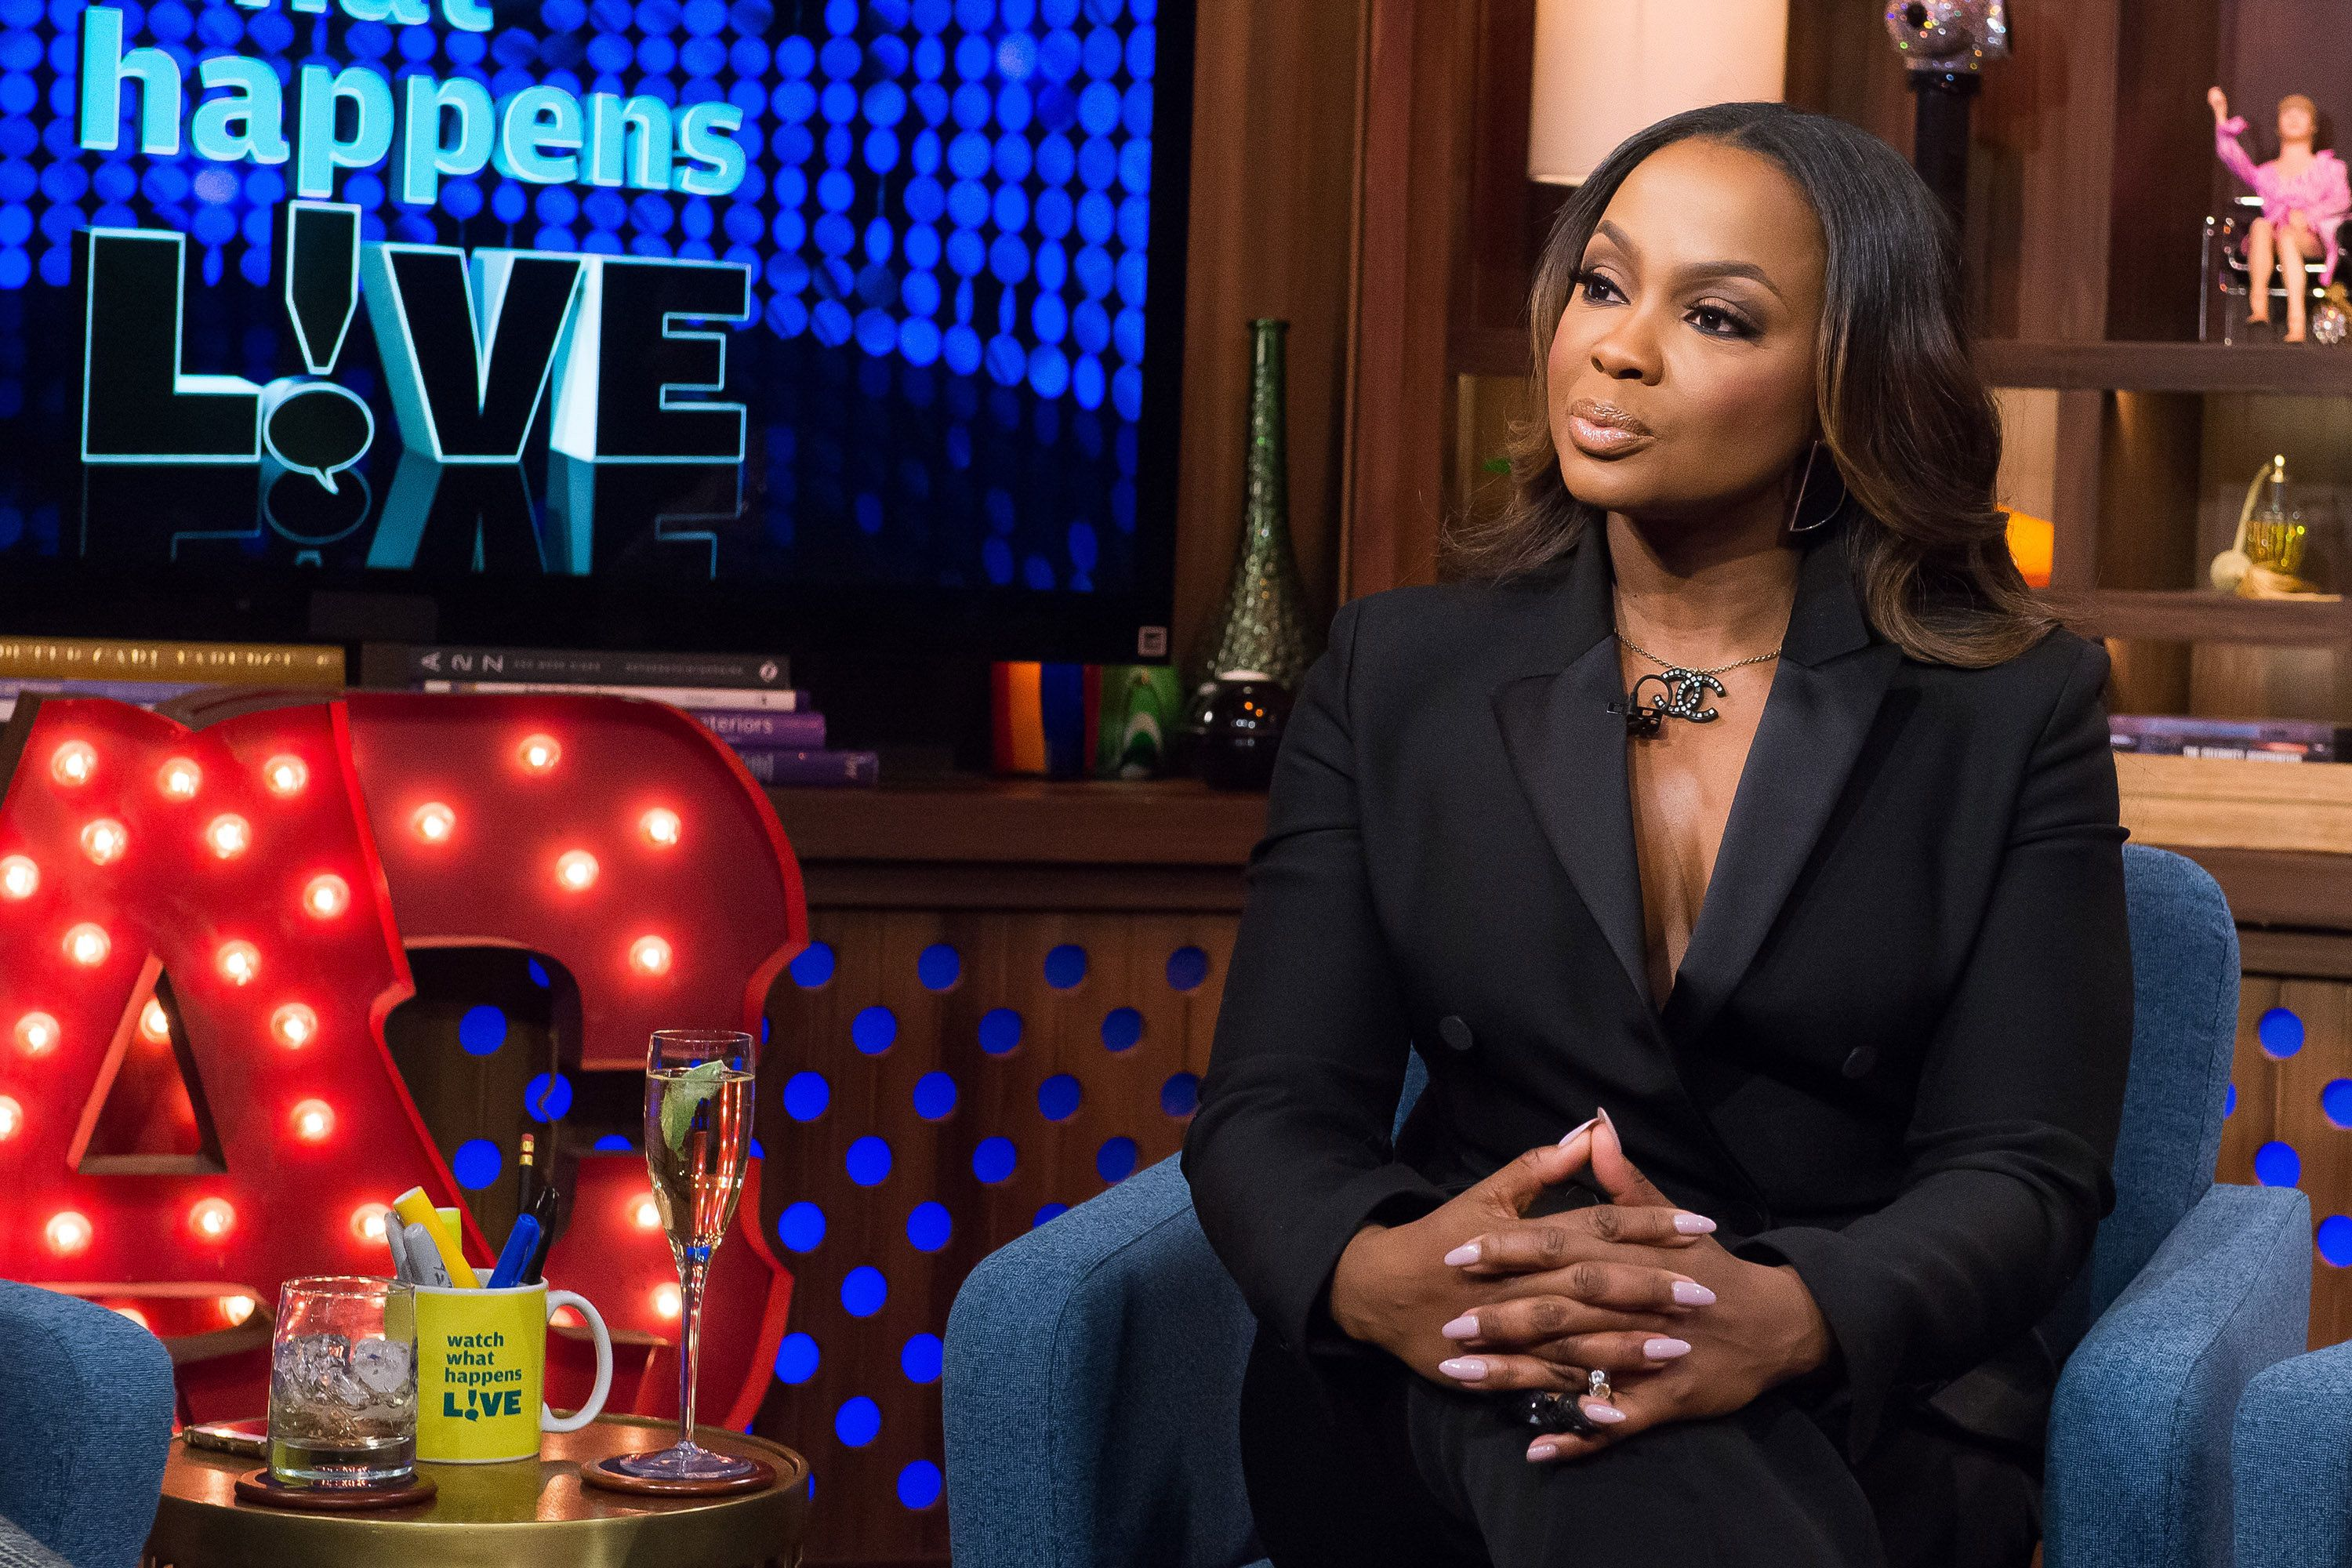 WATCH WHAT HAPPENS LIVE -- Pictured: Phaedra Parks -- (Photo by: Charles Sykes/Bravo/NBCU Photo Bank via Getty Images)